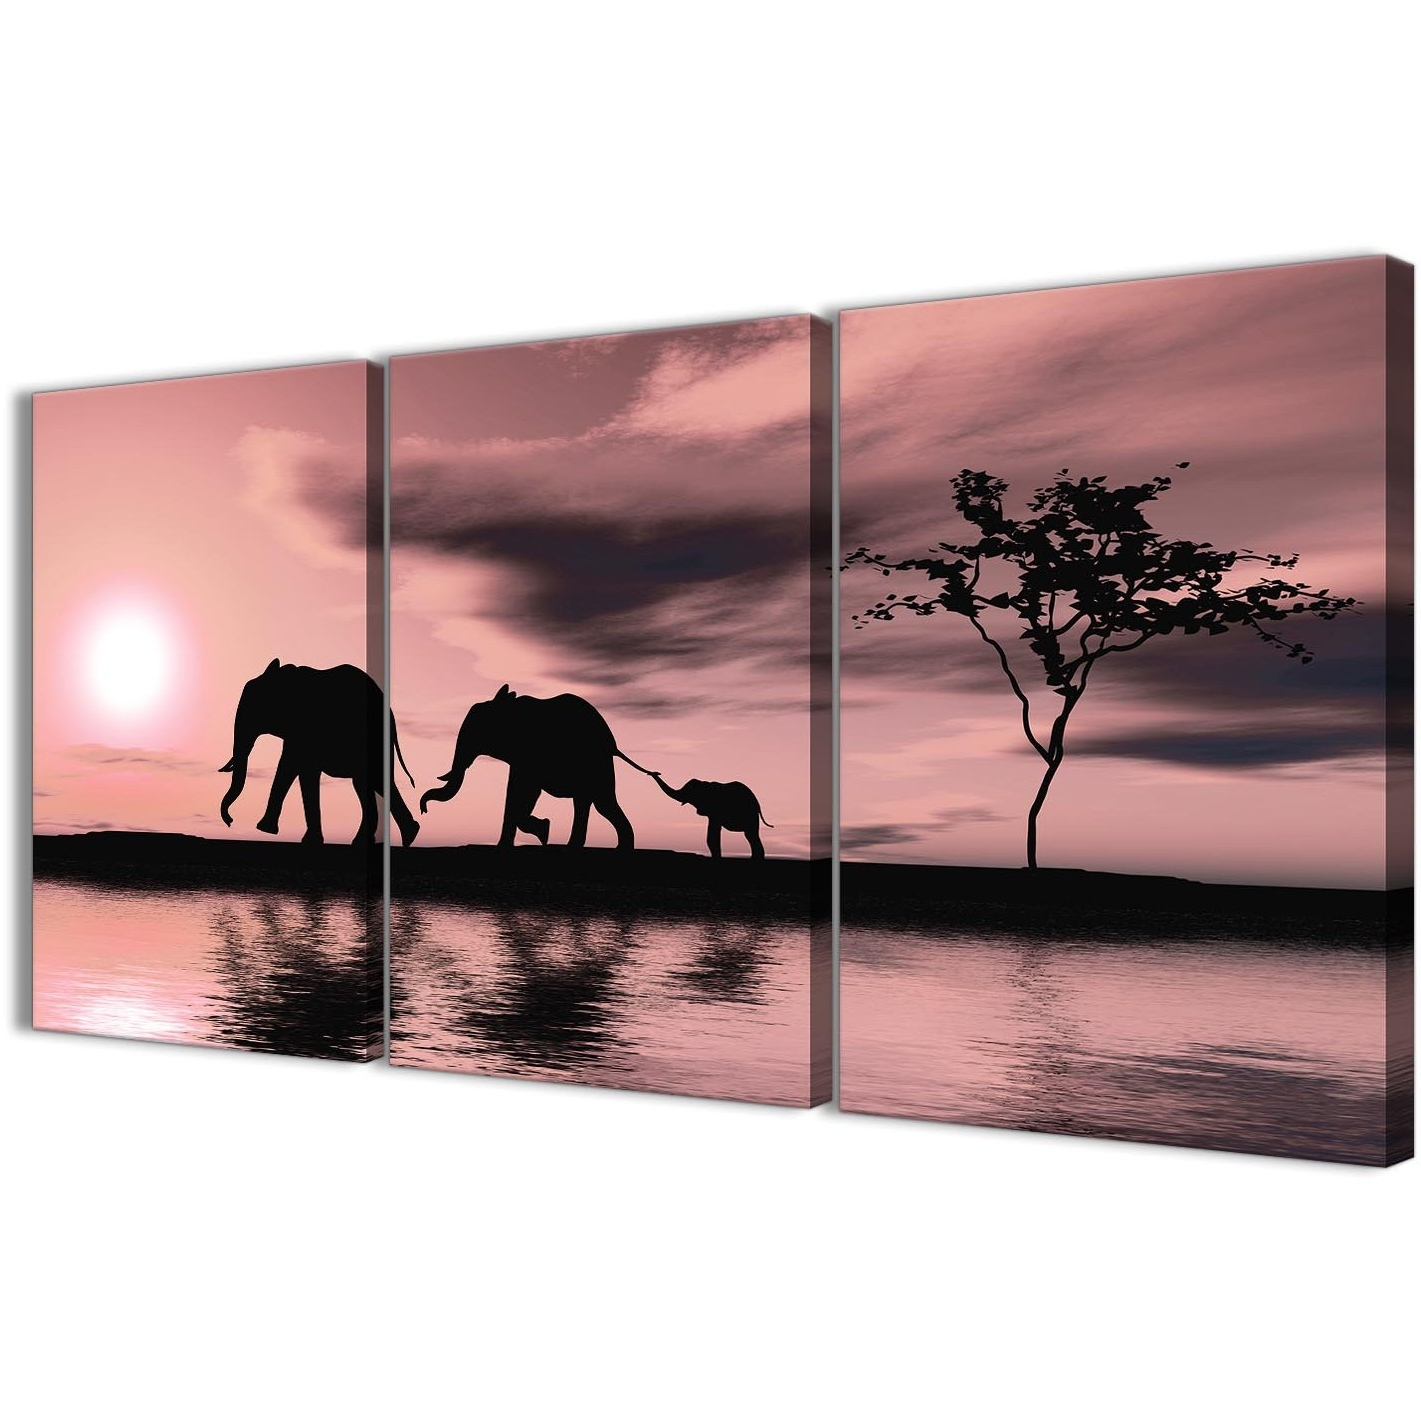 Most Recent Elephant Canvas Wall Art Inside Blush Pink African Sunset Elephants Canvas Wall Art Print – Multi (View 11 of 20)